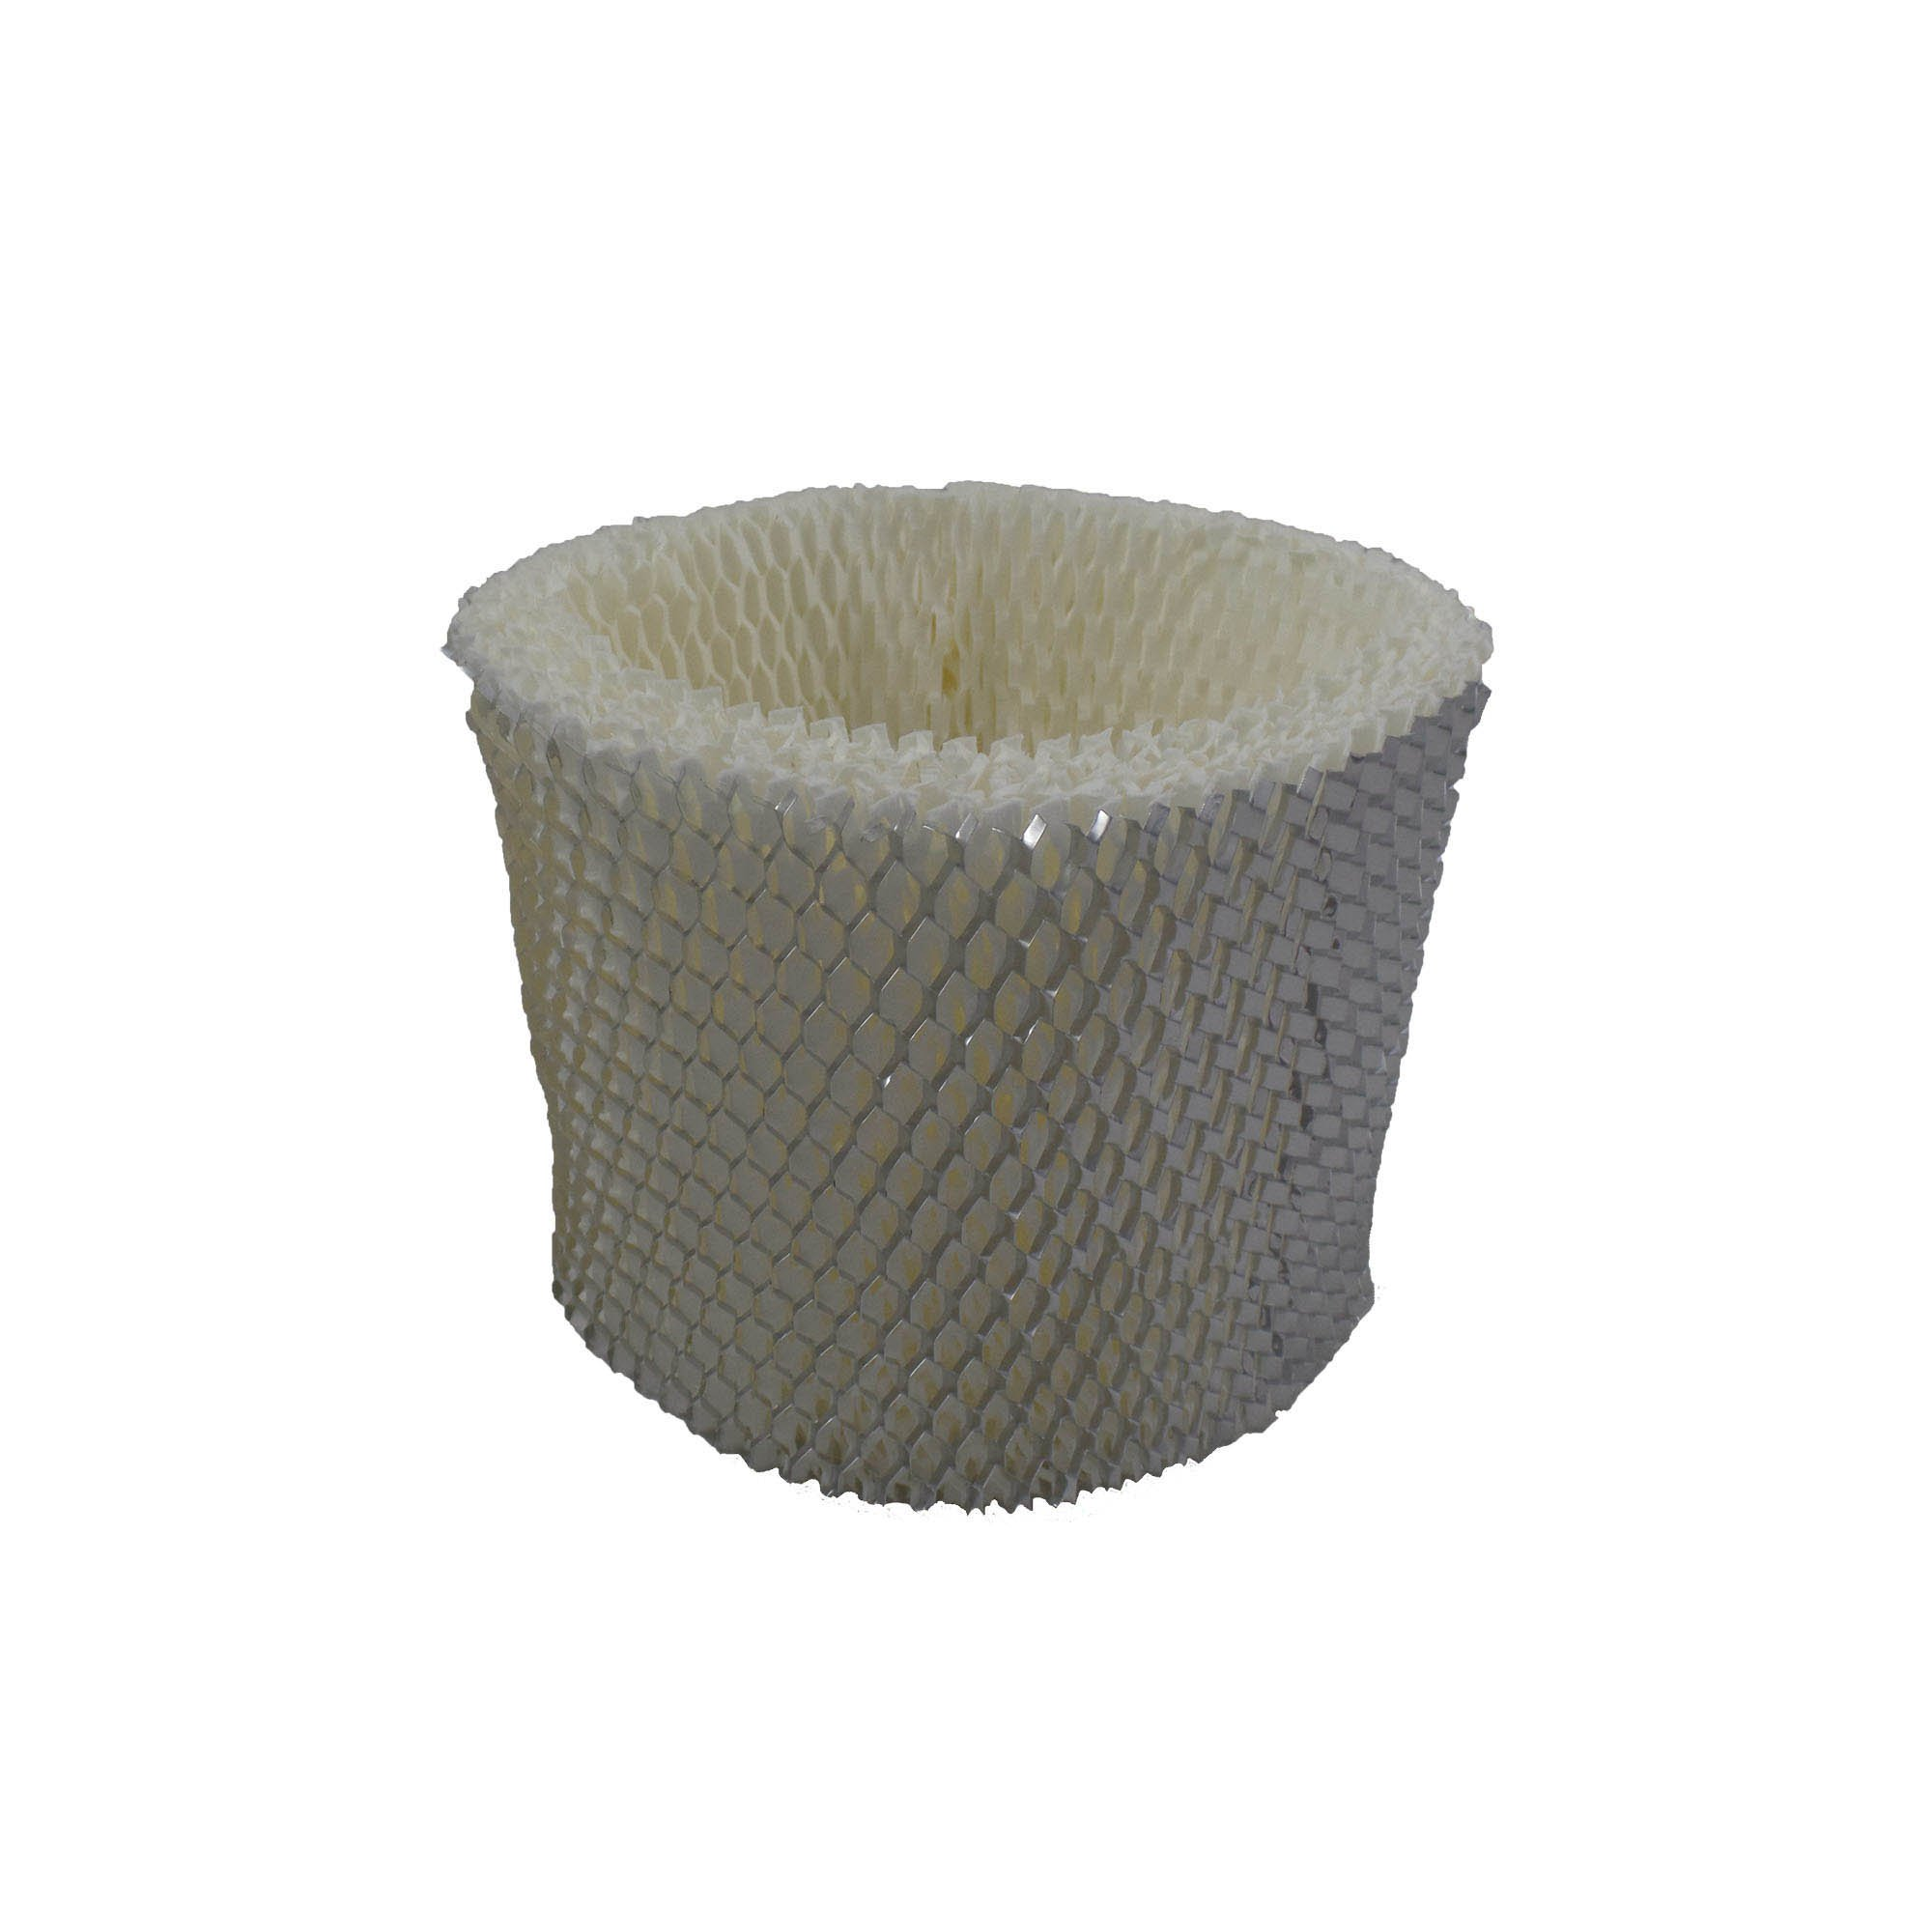 Air Filter Factory Compatible Replacement For Hamilton Beach 05520, 05521, 05920 Humidifier Filter